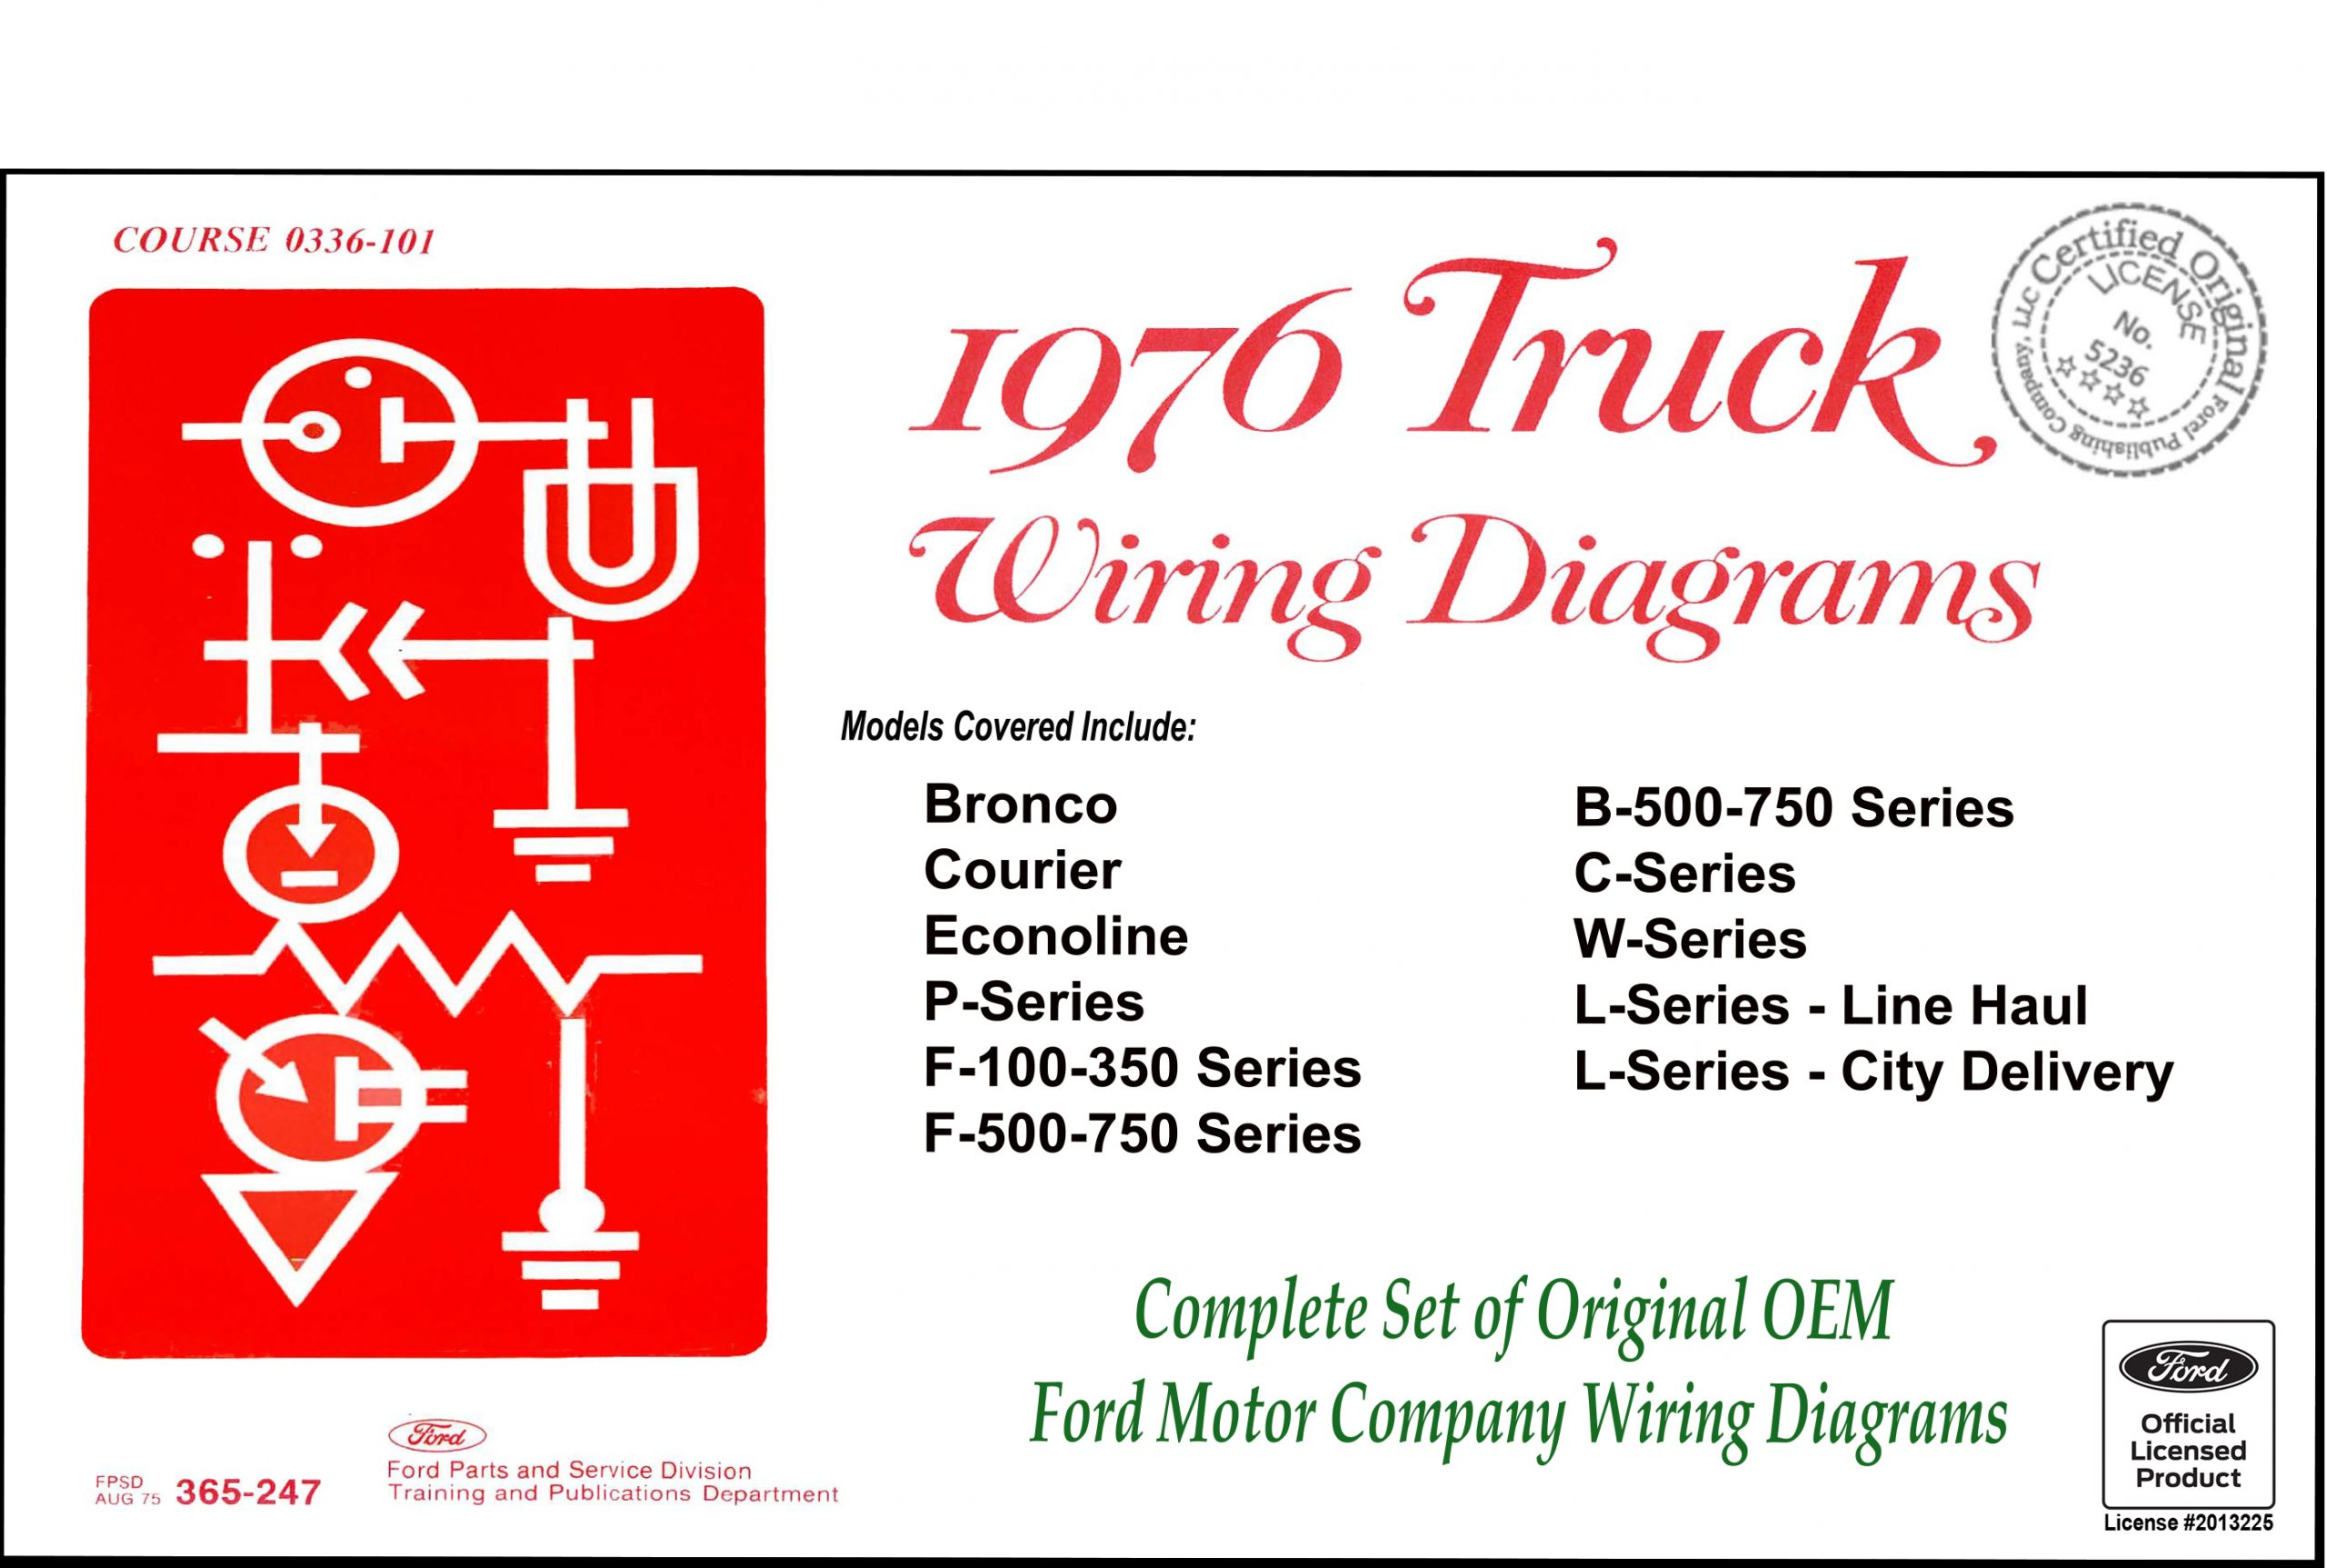 1976 Ford Truck Wiring Diagrams - Fordmanuals.com